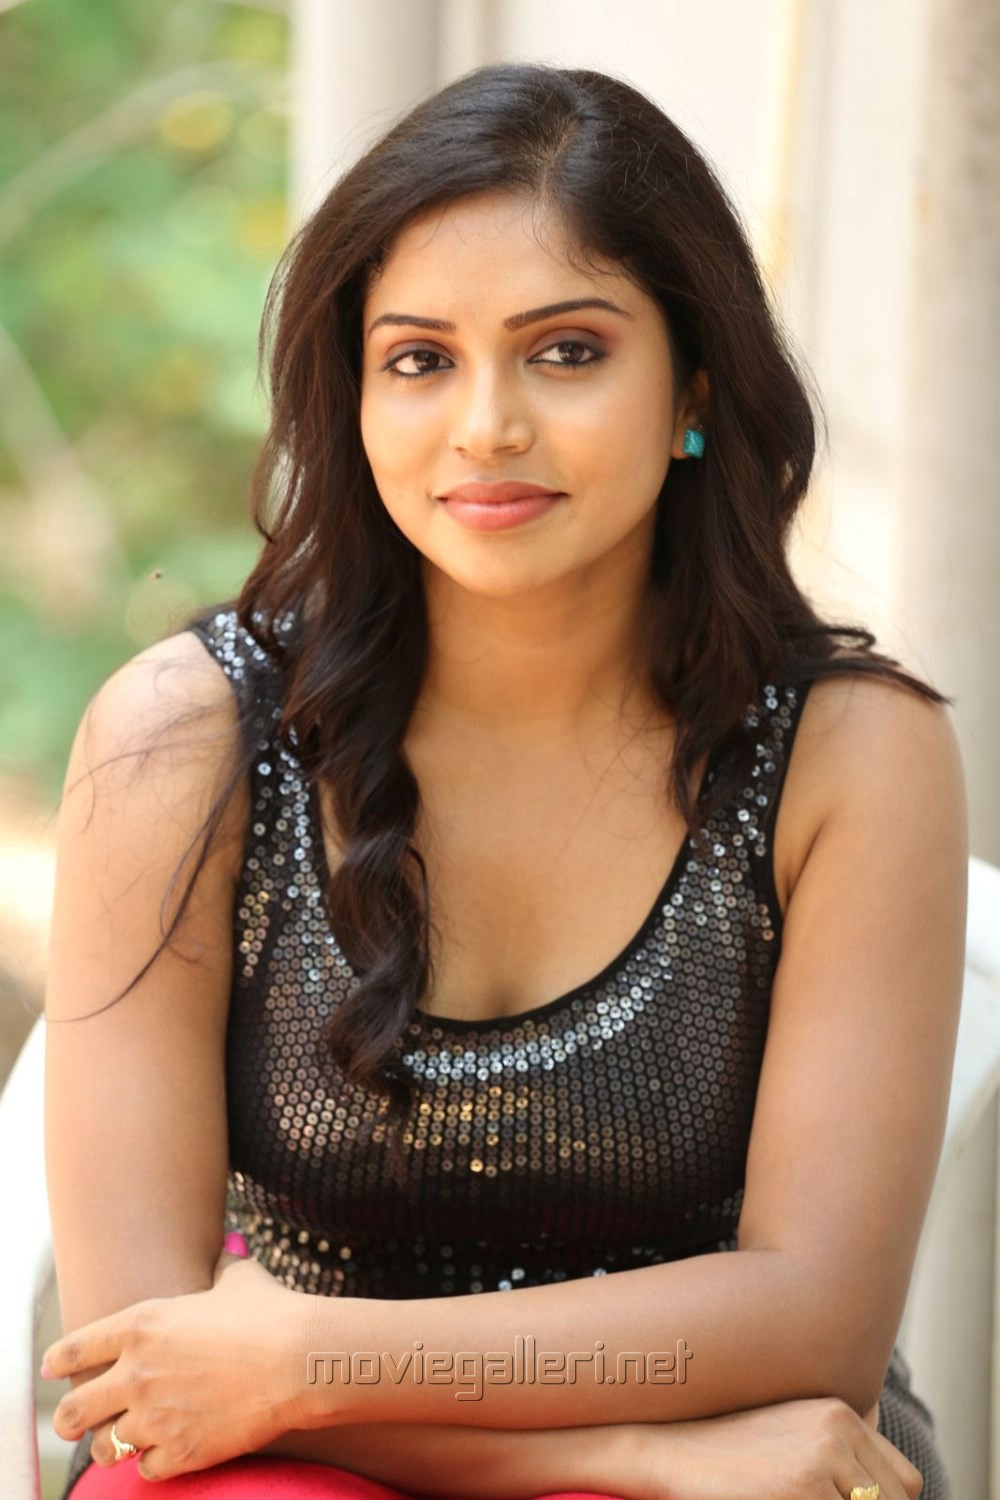 Swimsuit Telugu Actress Naked Picsfree Rollyo Pic